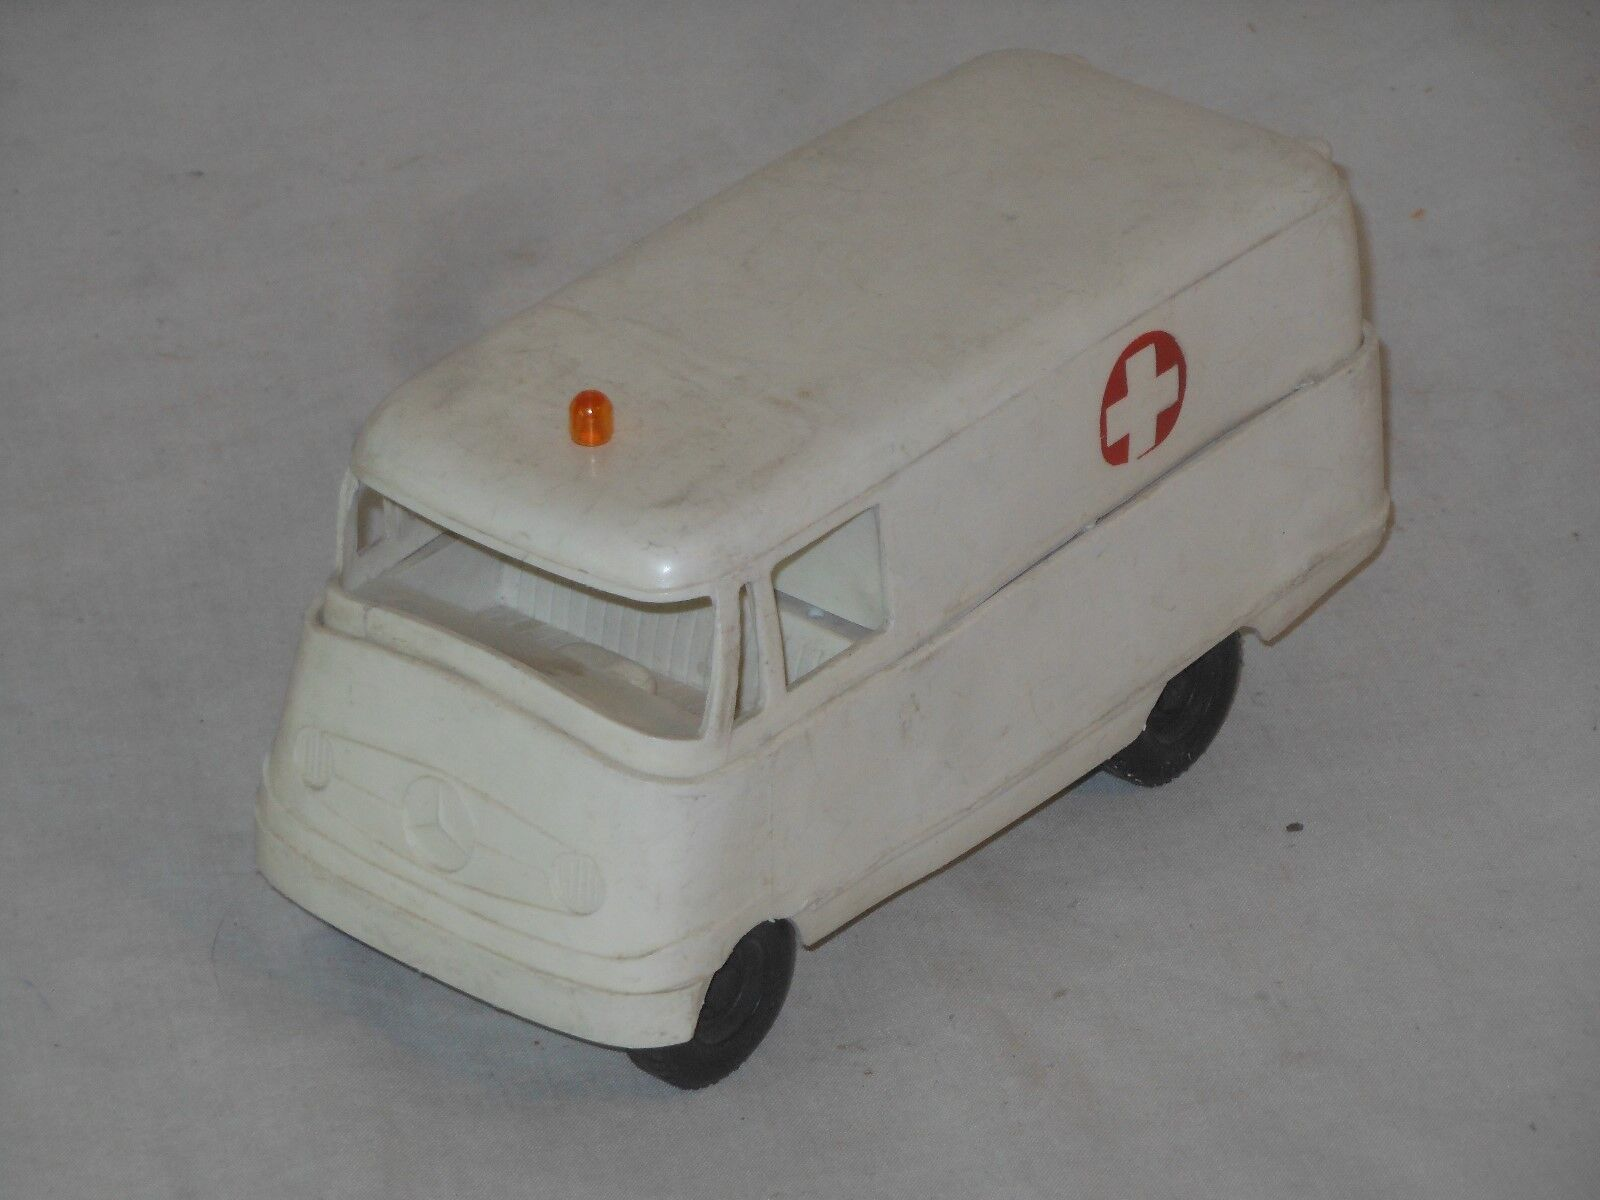 GAMA - MERCEDES BENZ BUS - 20 cm - VINTAGE TOY - WEST GERMANY - 11